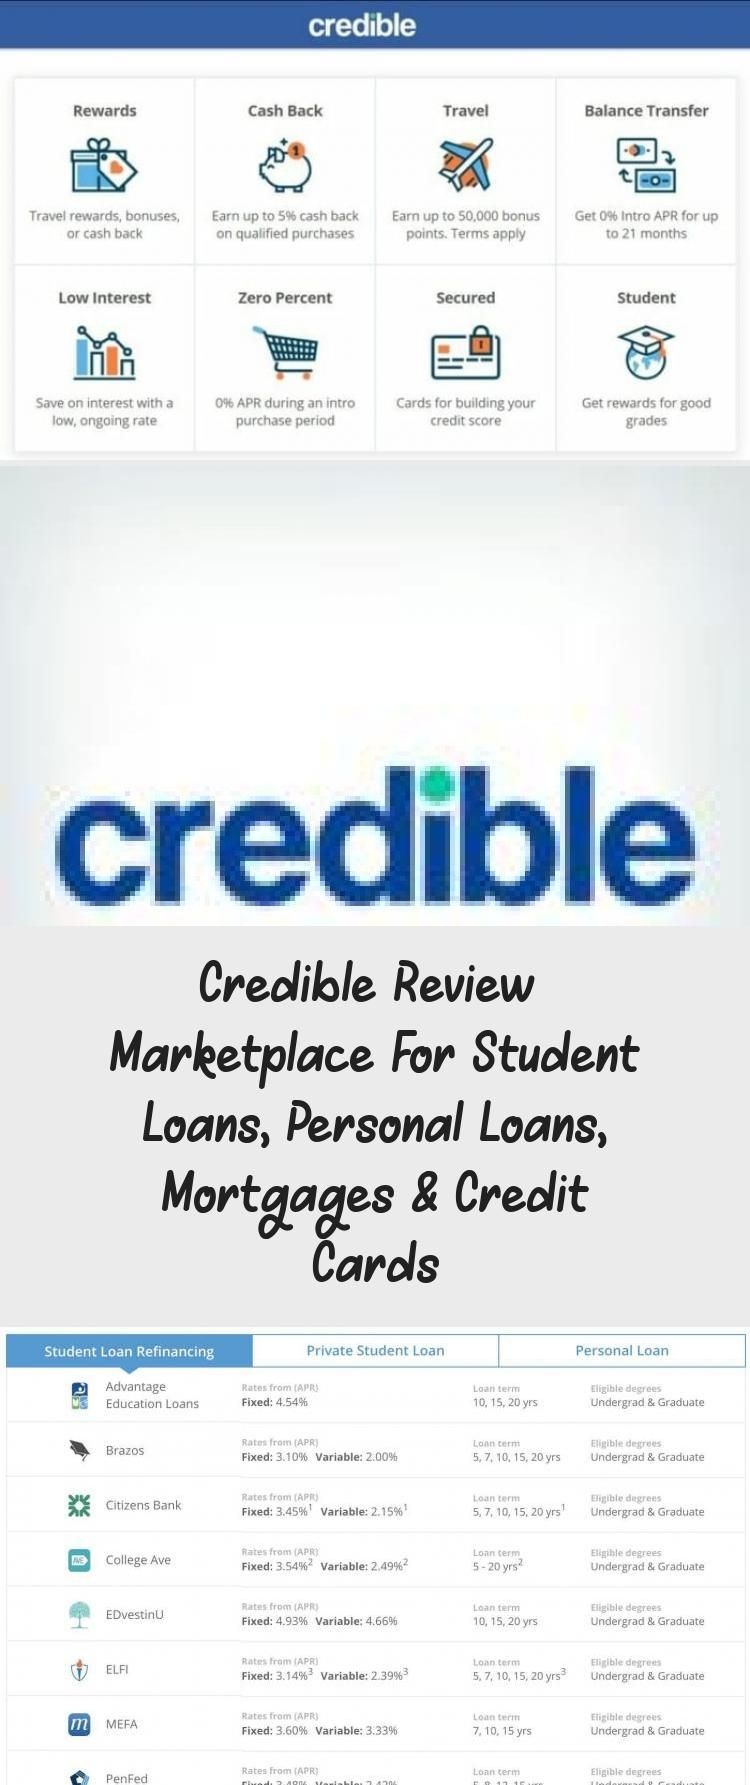 Credible Review Marketplace For Student Loans Personal Loans Mortgages Credit Cards Credit Score In 2020 Personal Loans Refinance Student Loans Student Loans